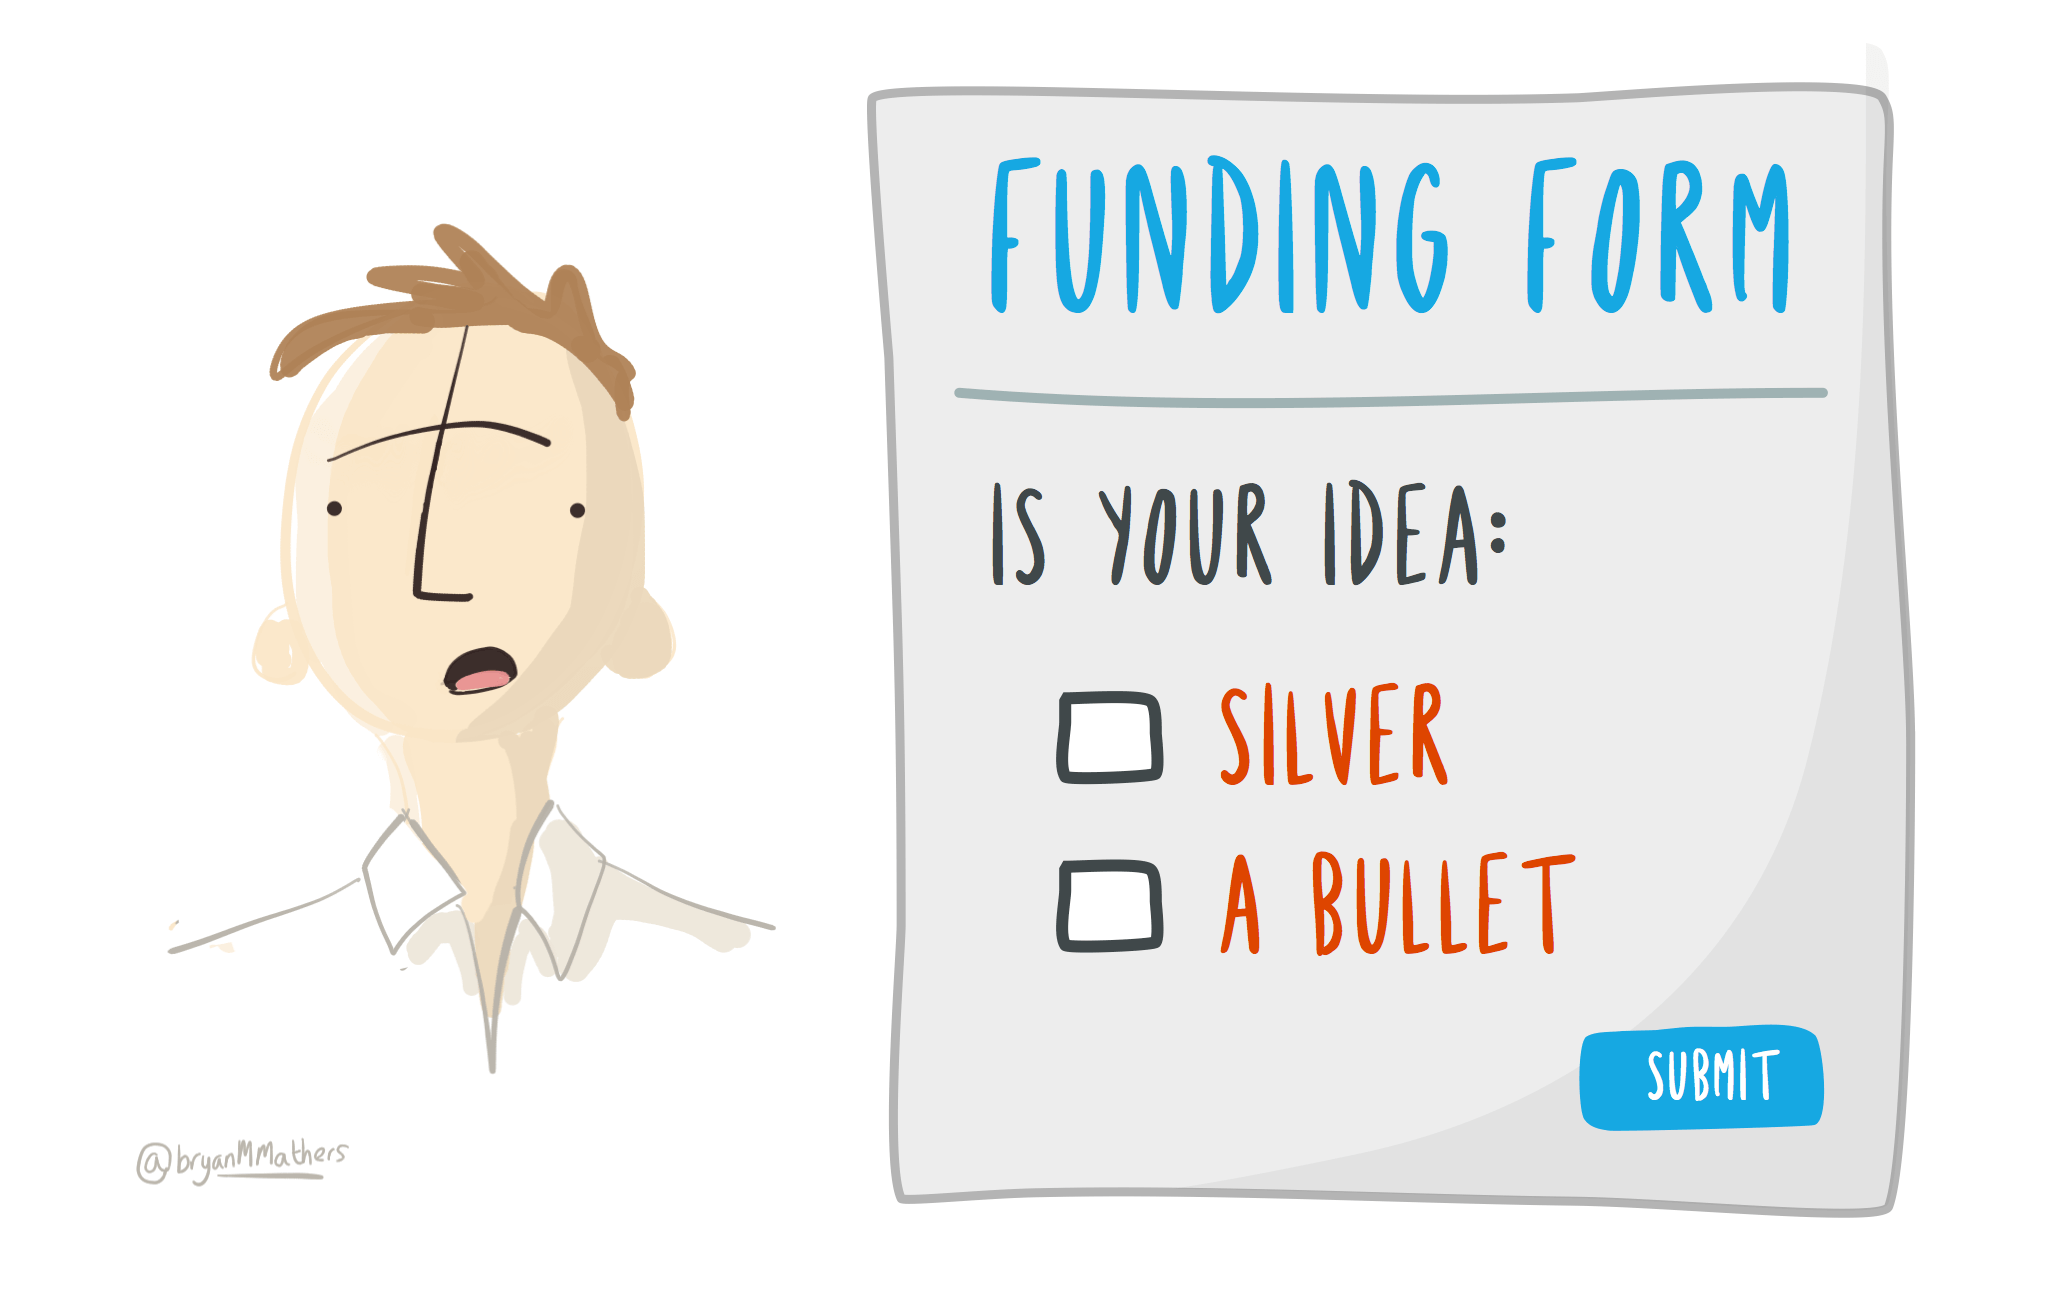 Funding Form